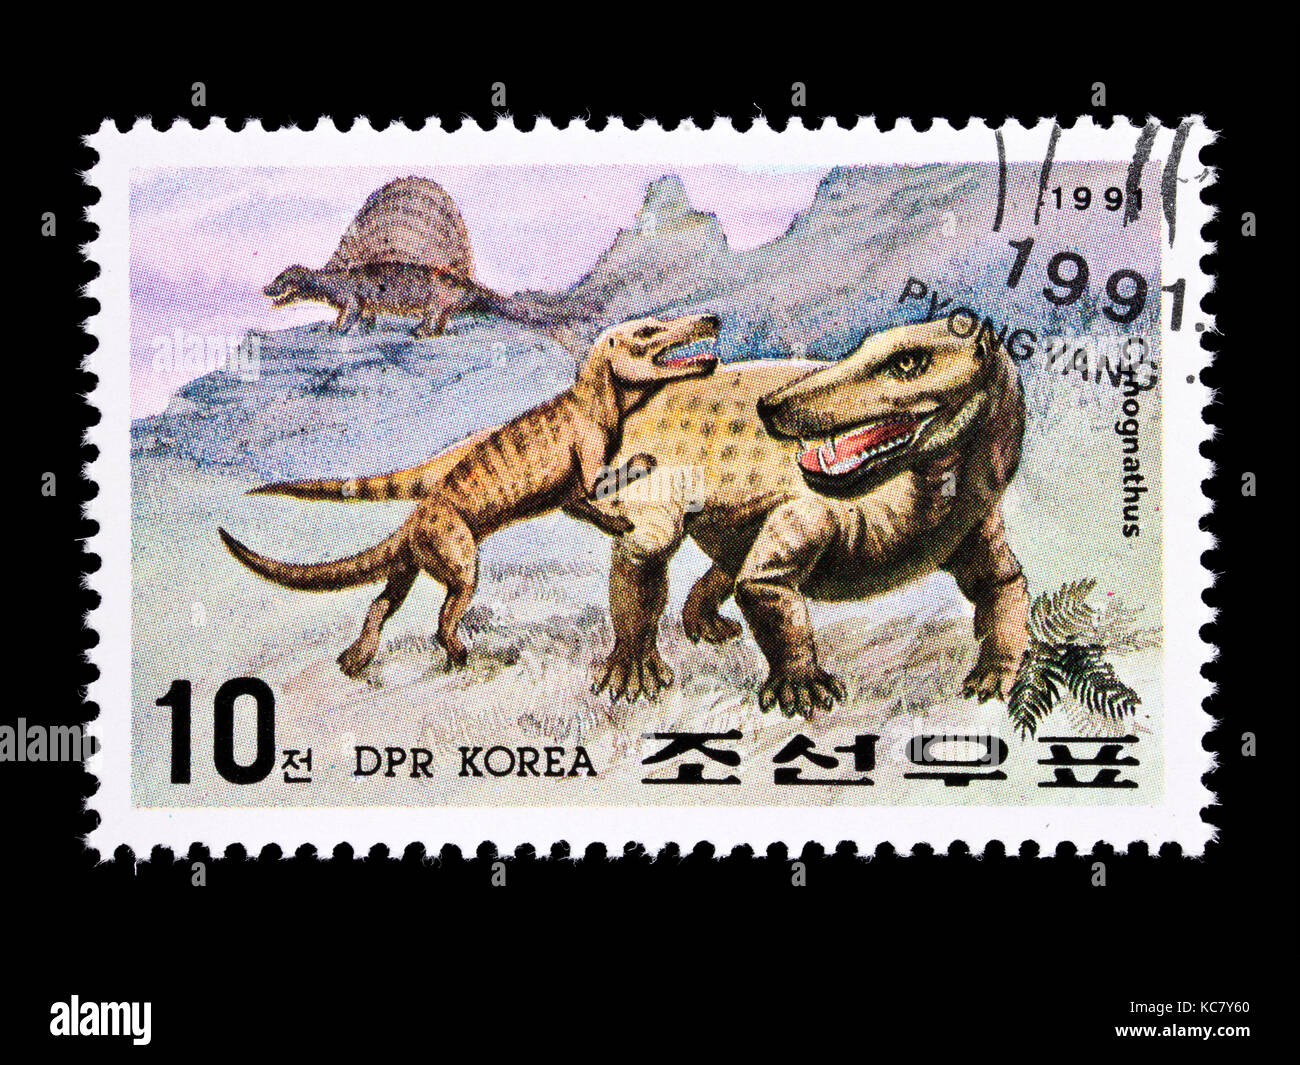 Postage stamp from North Korea depicting a cynognathus - Stock Image